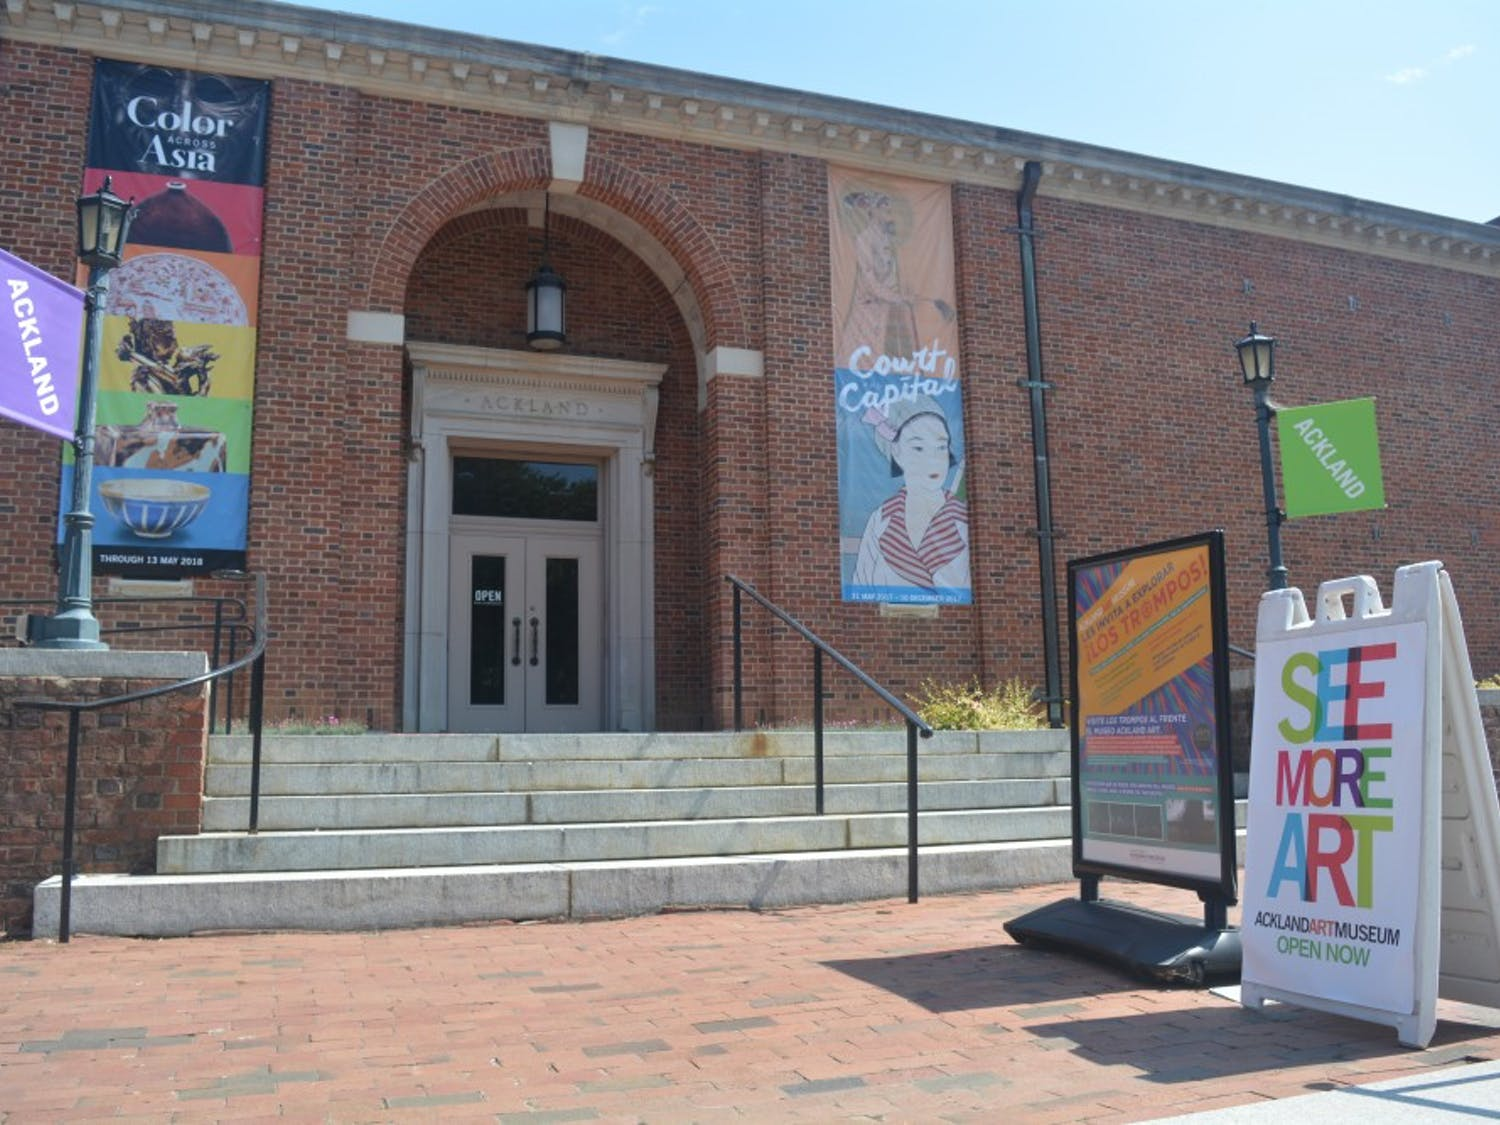 The Ackland Art Museum is a museum and academic unit of The University of North Carolina at Chapel Hill located on S Columbia Street. Photo courtesy of Molly Sprecher.